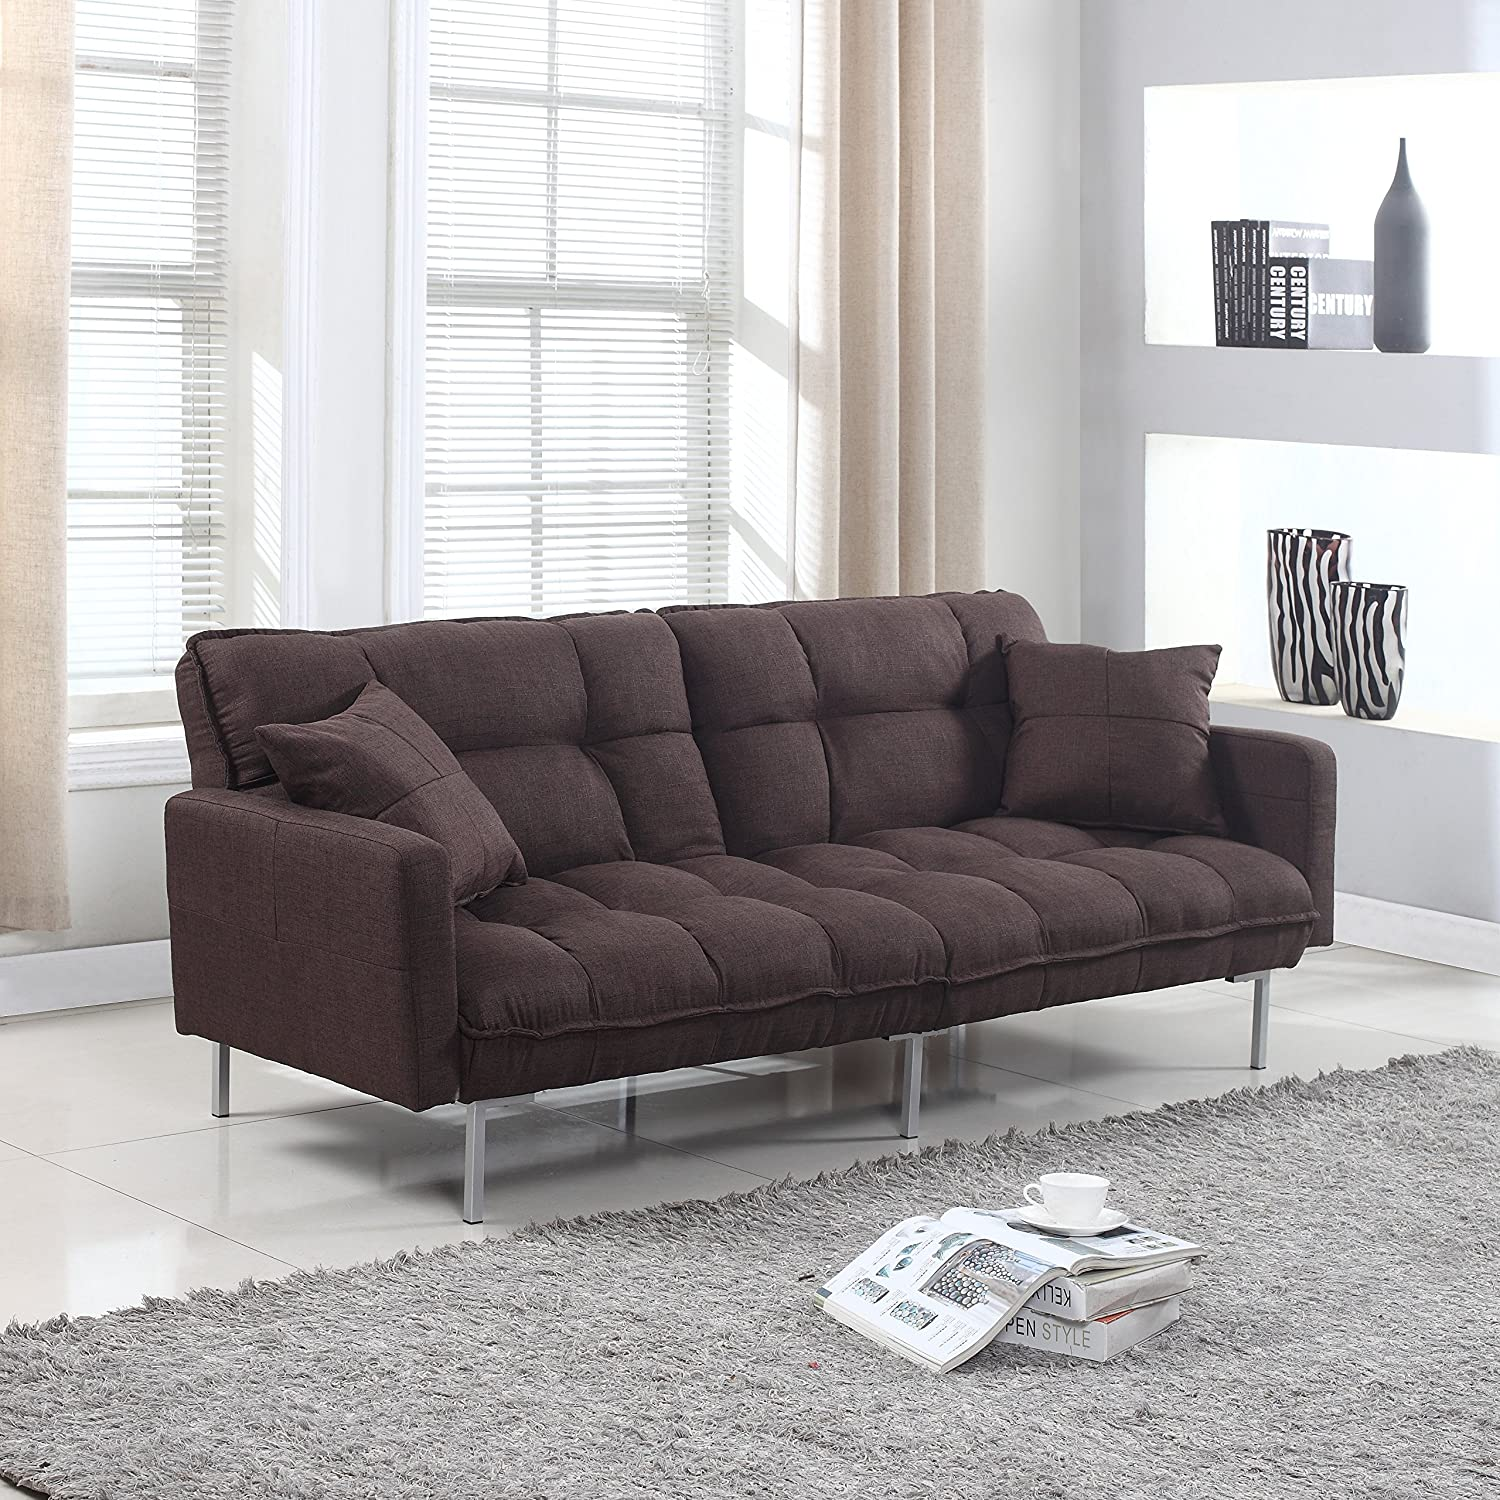 Amazon Modern Plush Tufted Linen Fabric Sleeper Futon